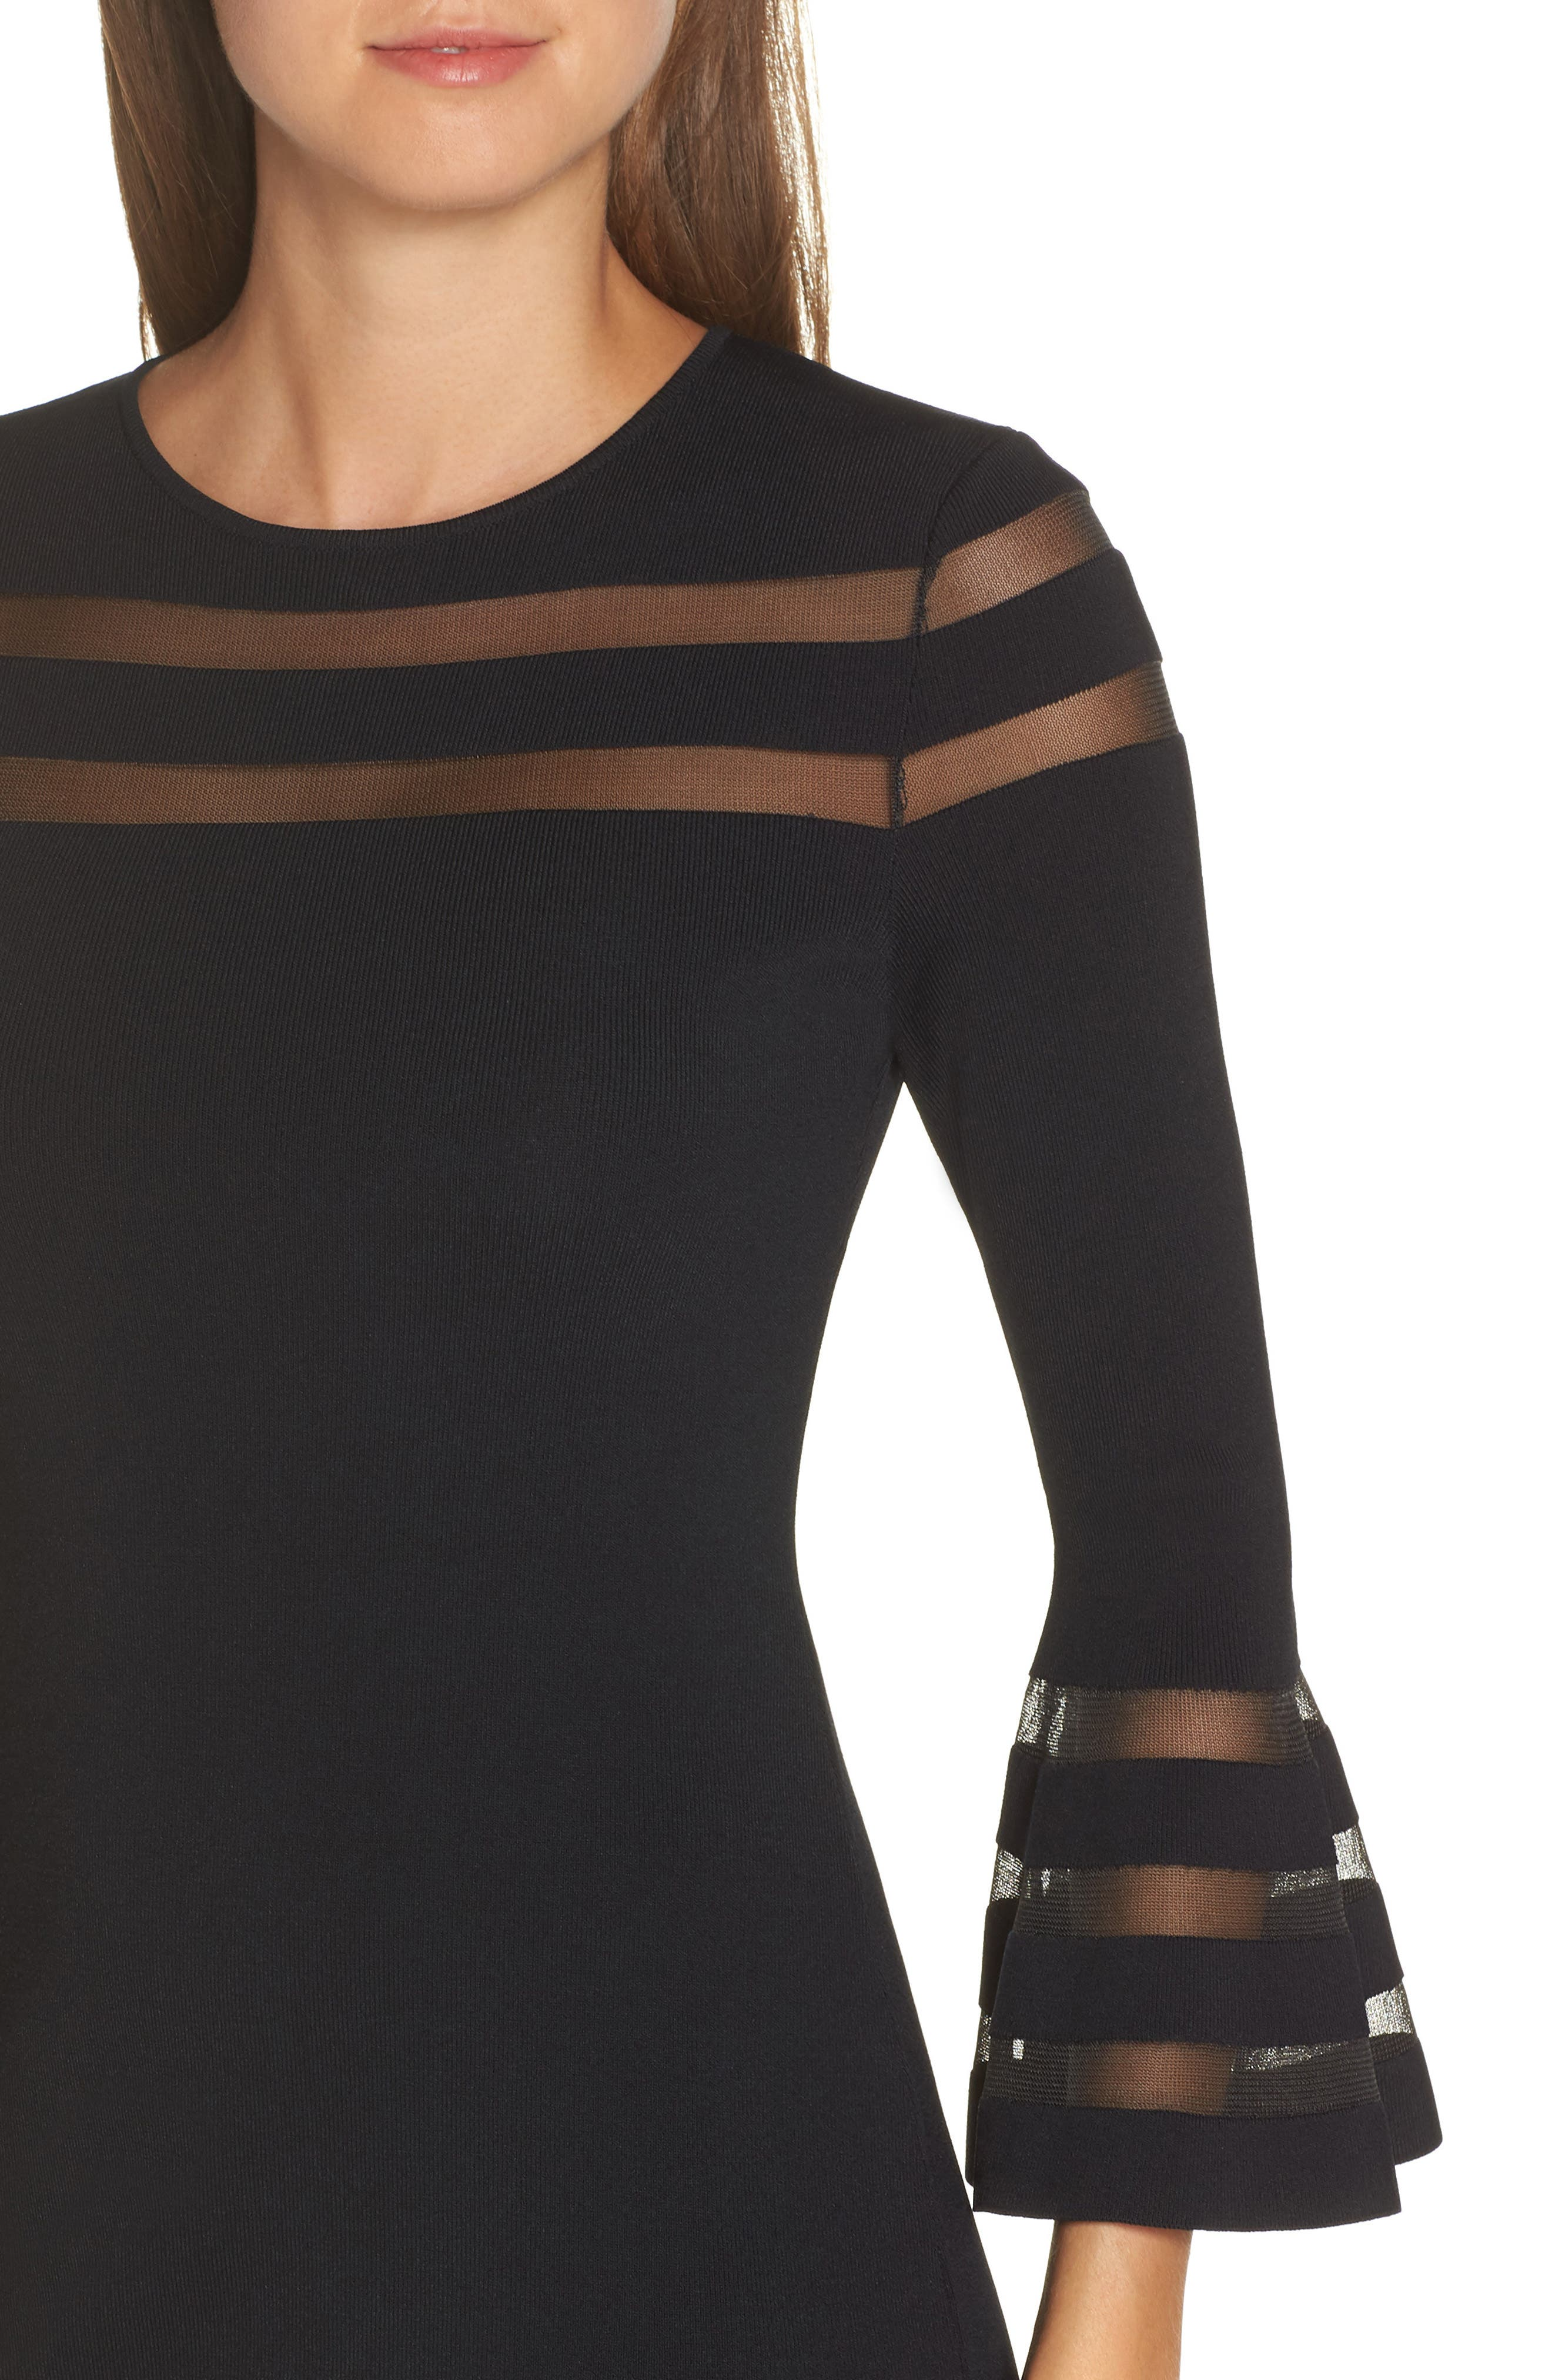 ELIZA J, Mesh Stripe Sweater Dress, Alternate thumbnail 5, color, BLACK